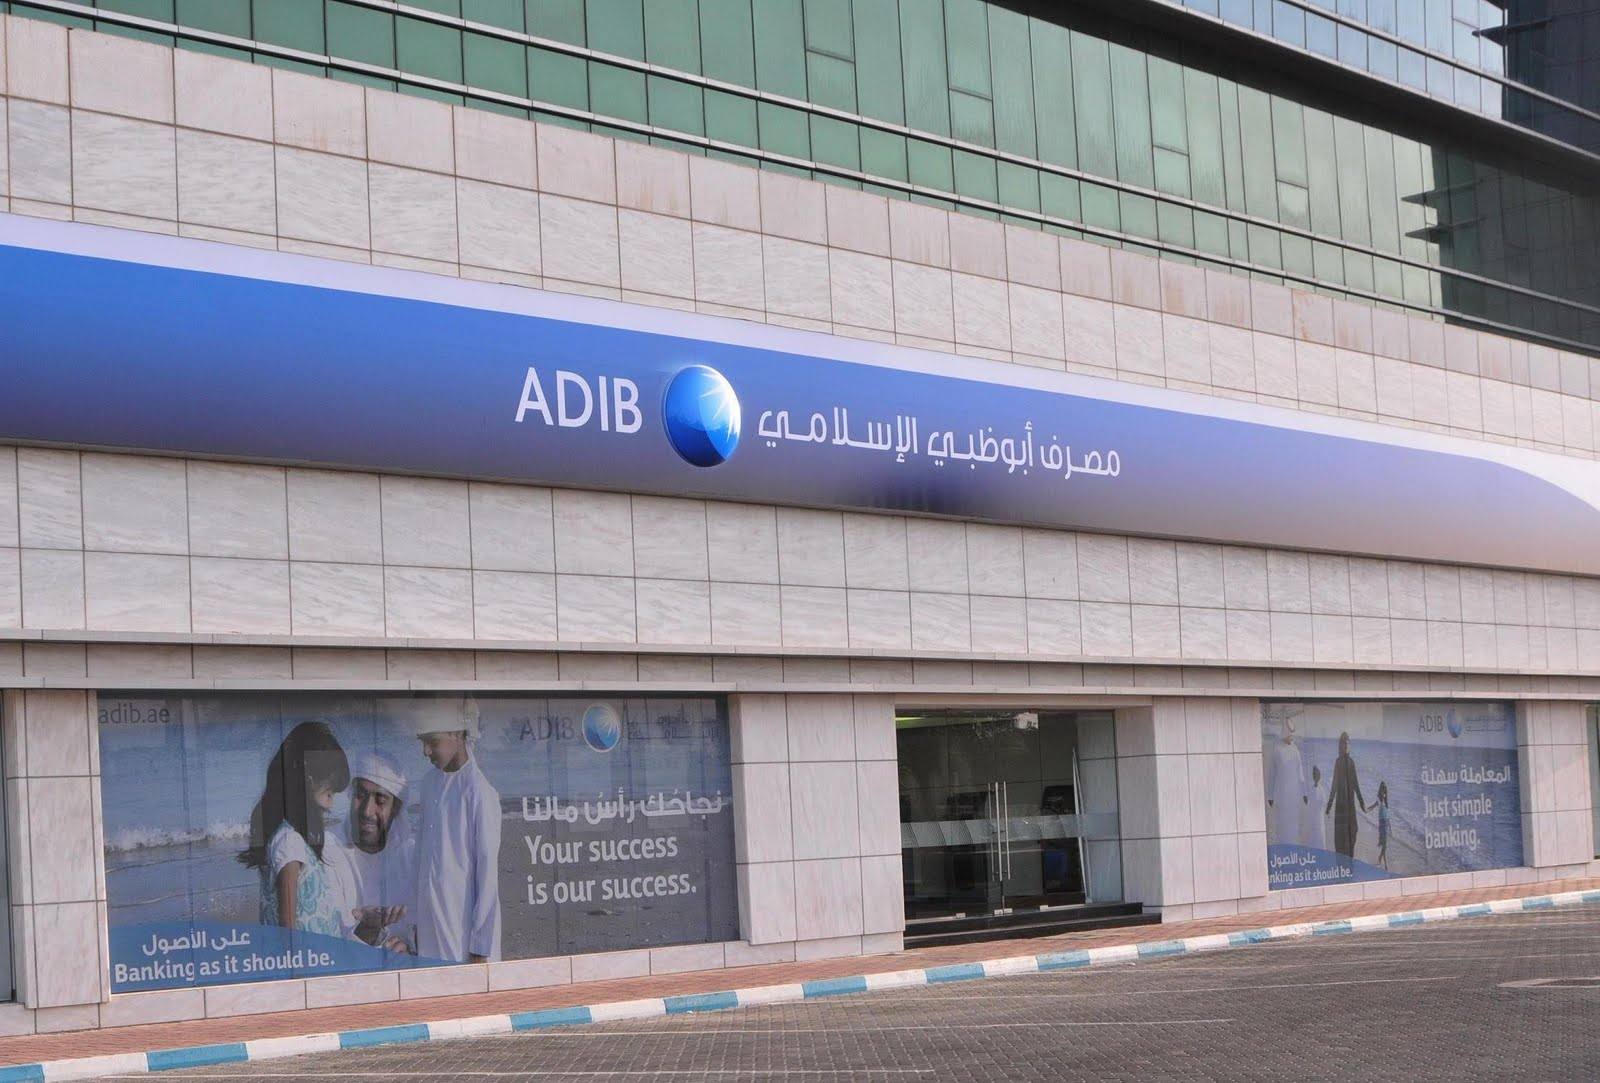 Dubai News, UAE News, Gulf News, Business News: ADIB and UAE